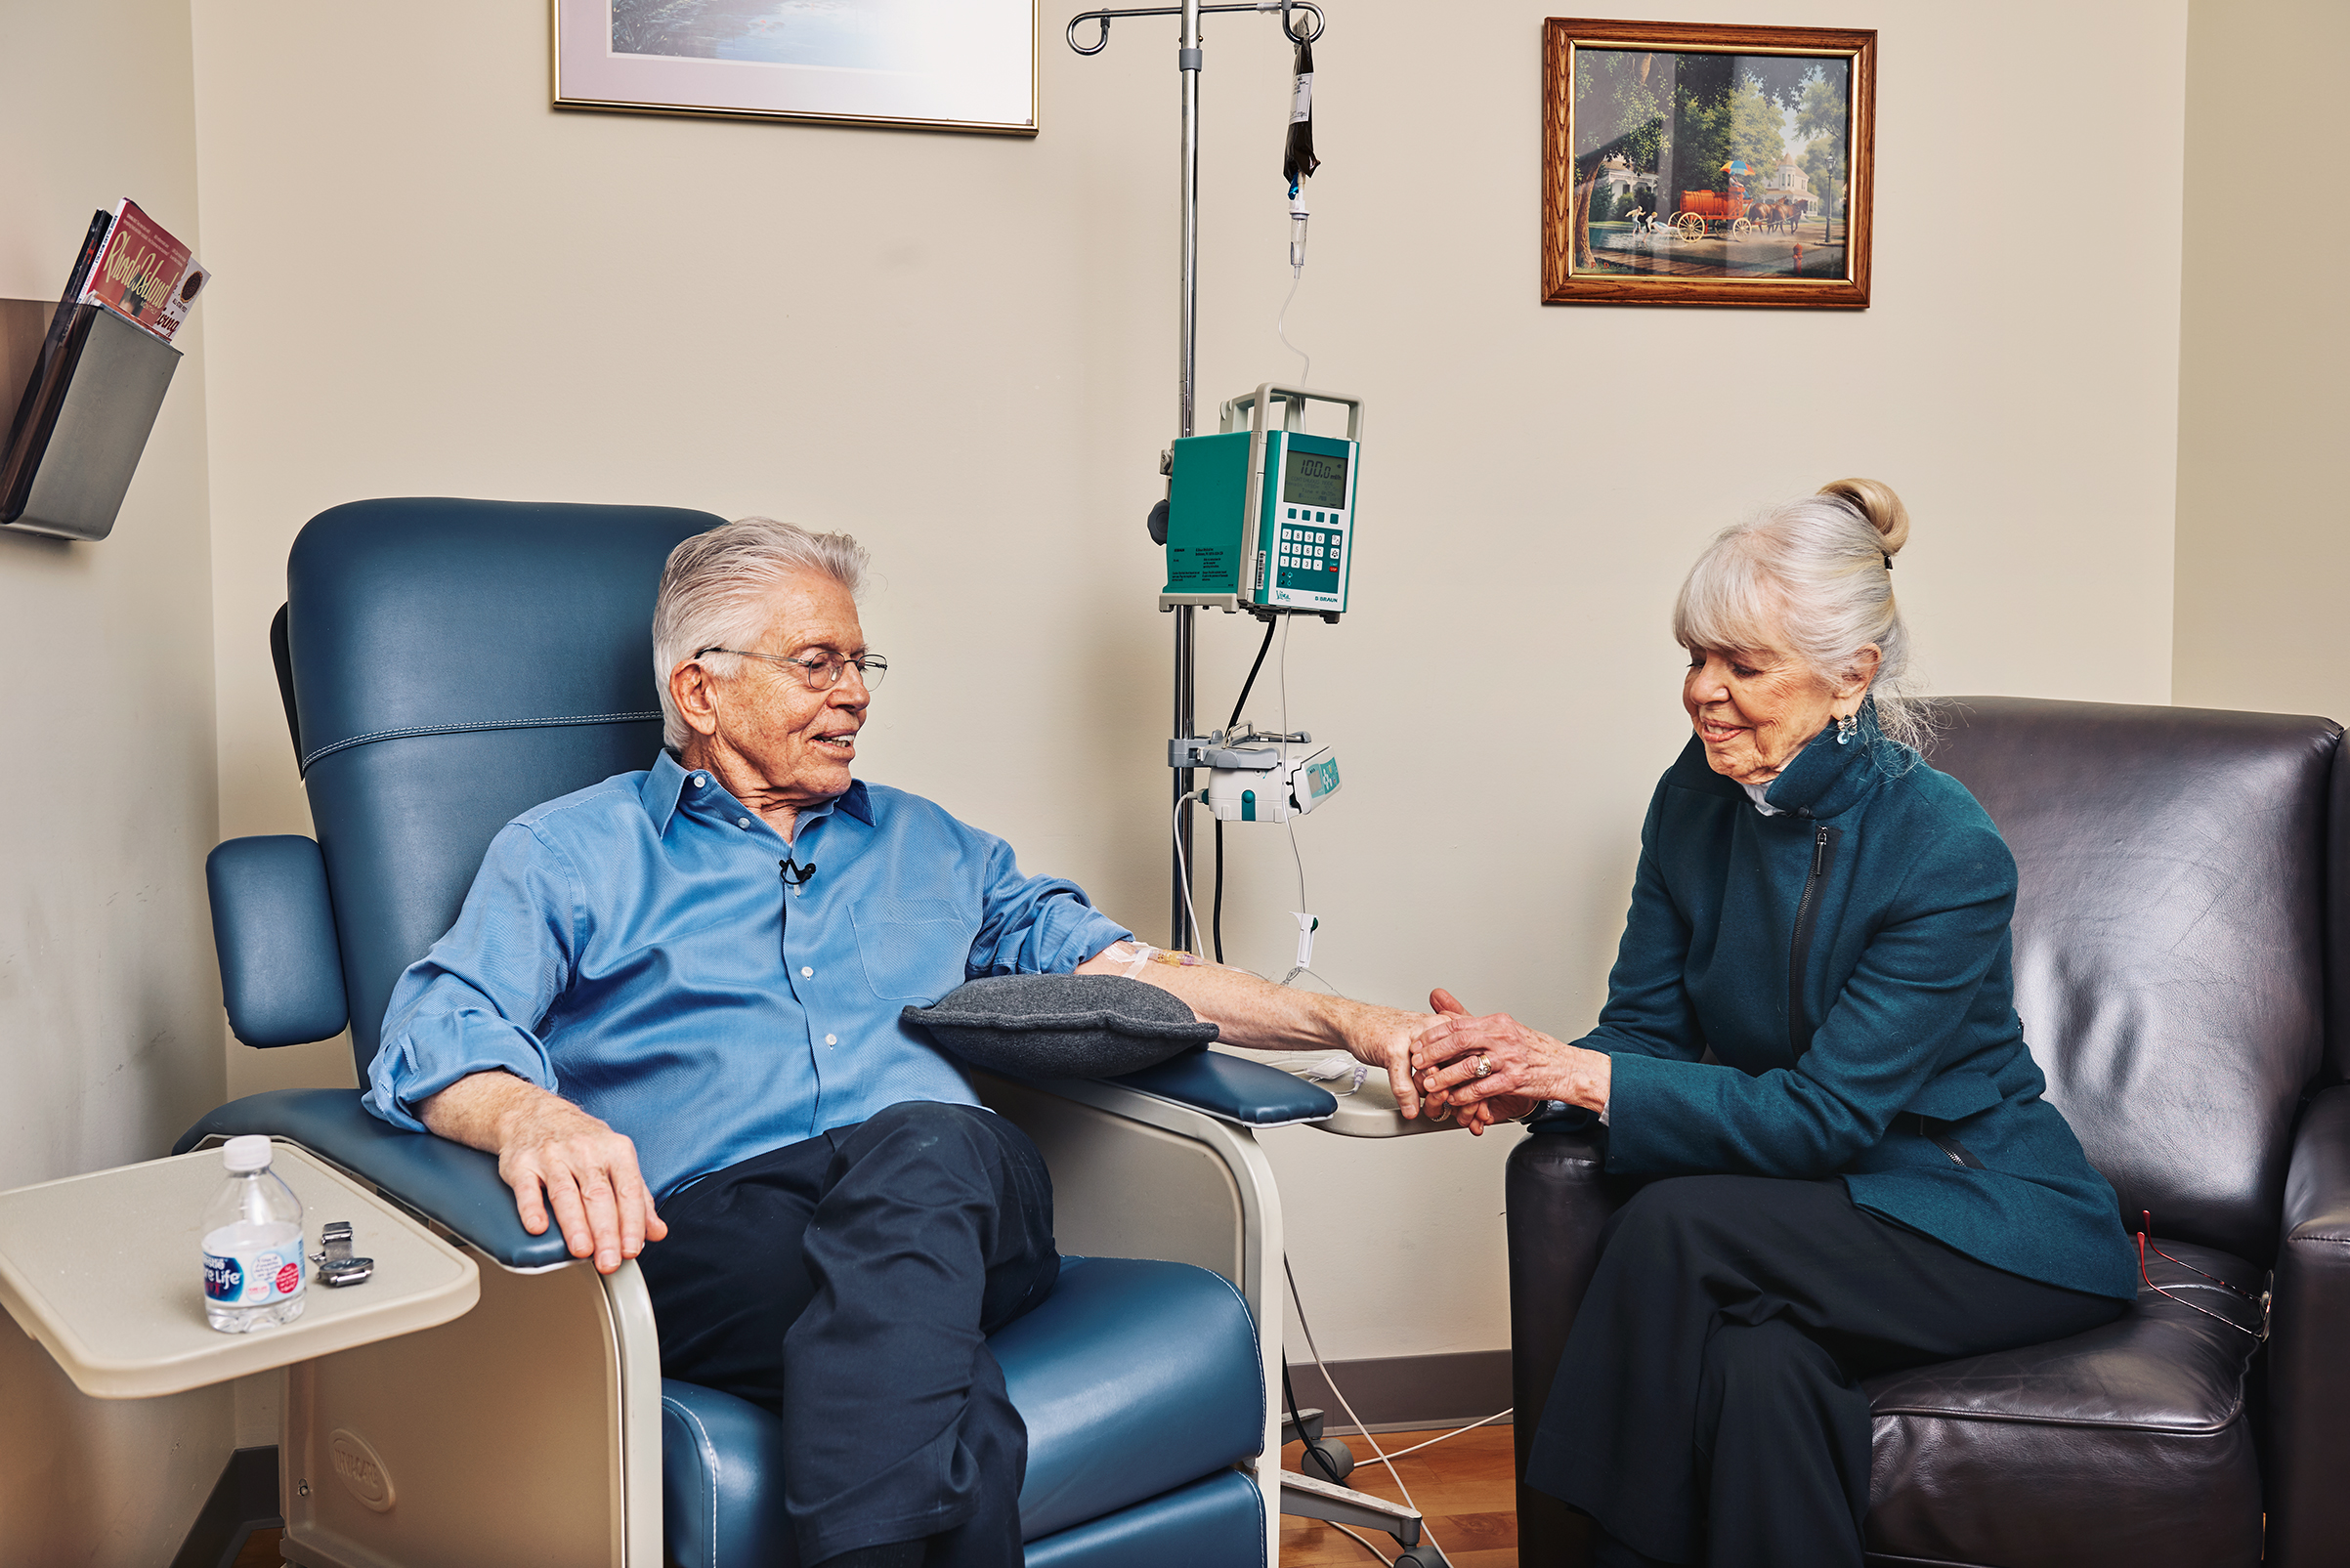 Peter Wooding, with his his wife JoAnn, receiving an infusion of the experimental Alzheimer's drug aducanumab in 2017.